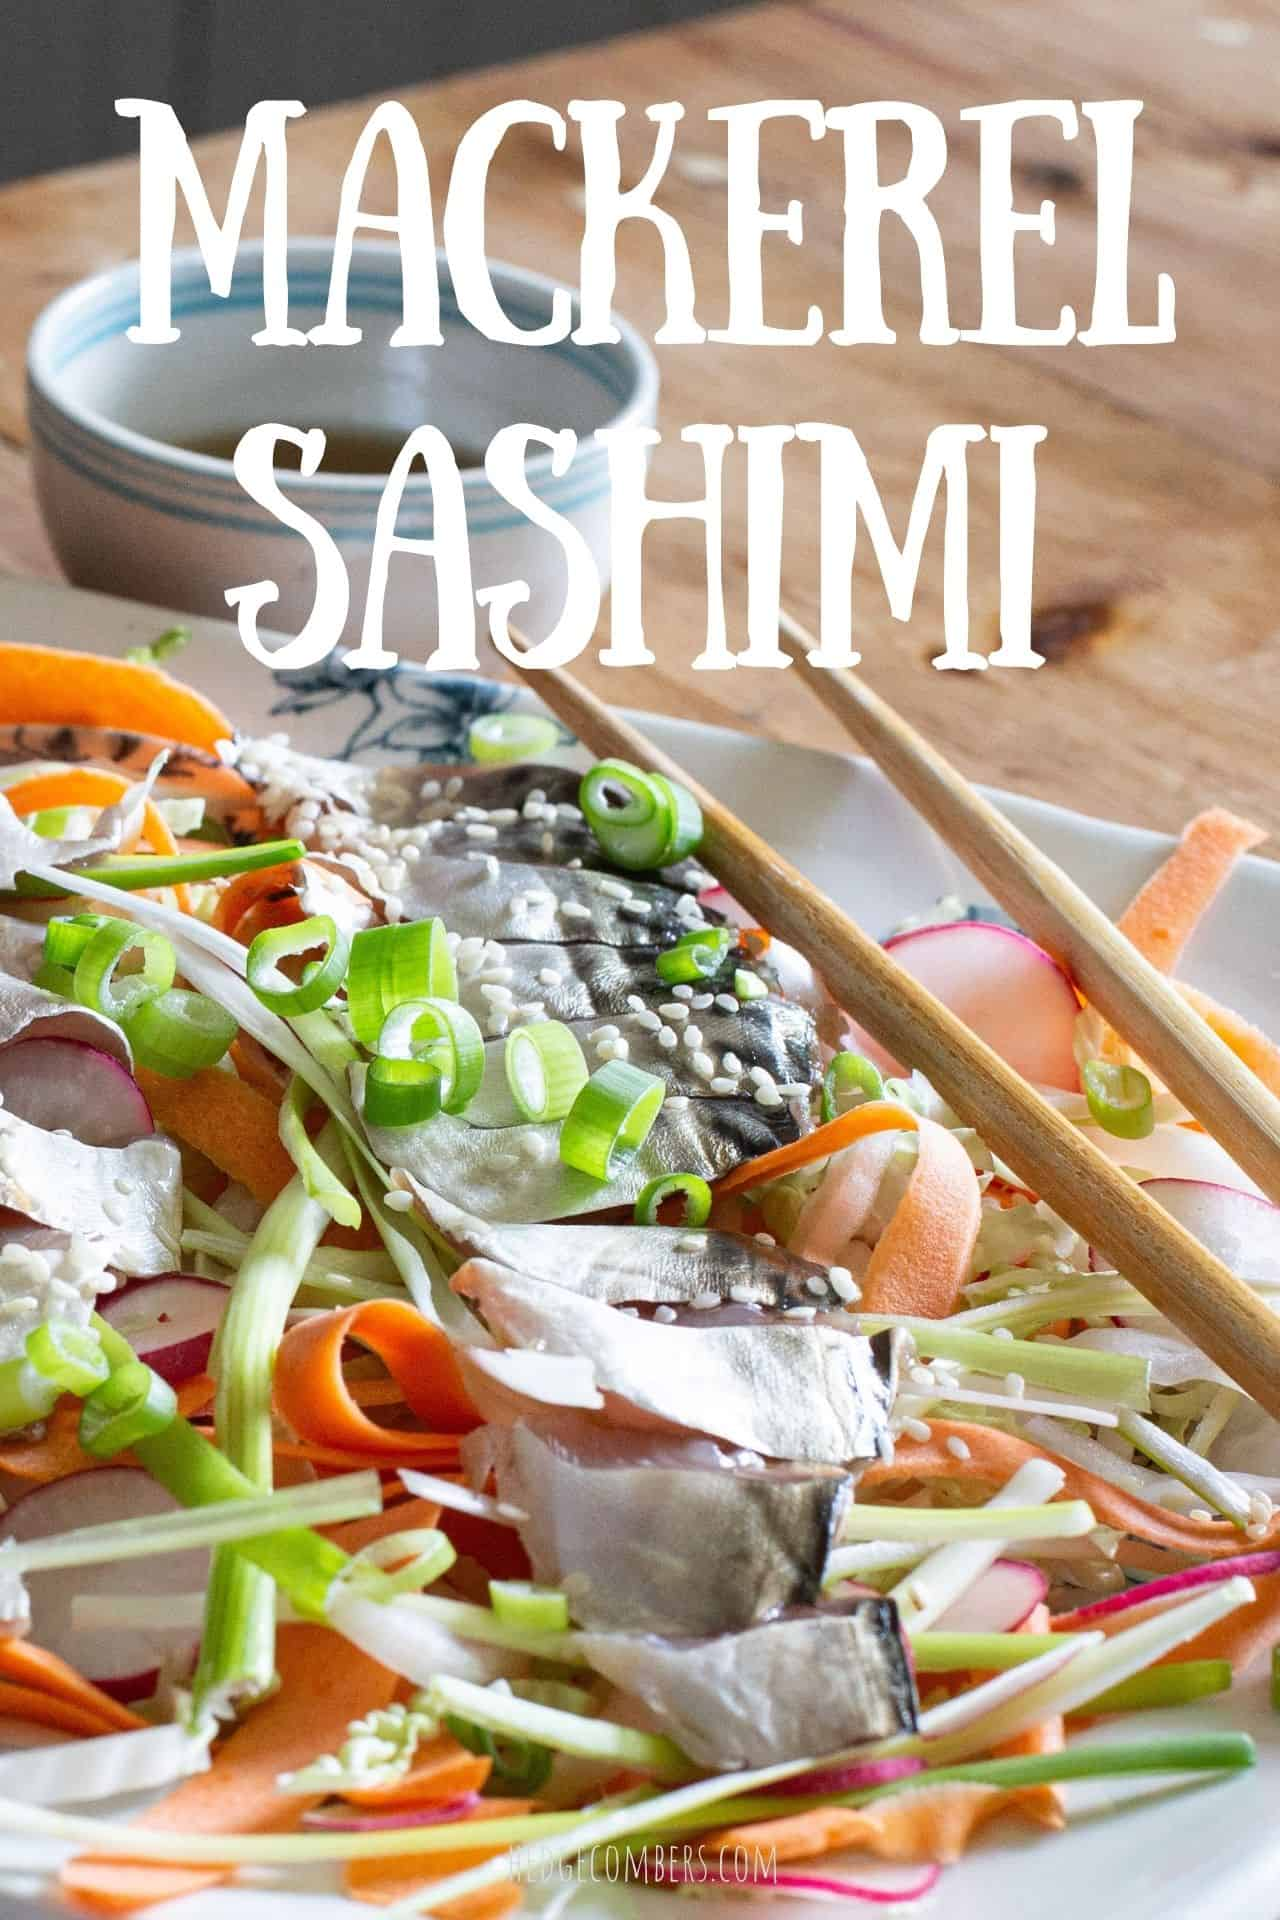 white plate on wooden surface topped with orange and green salad and a fillet of fresh mackerel sashimi sliced on top